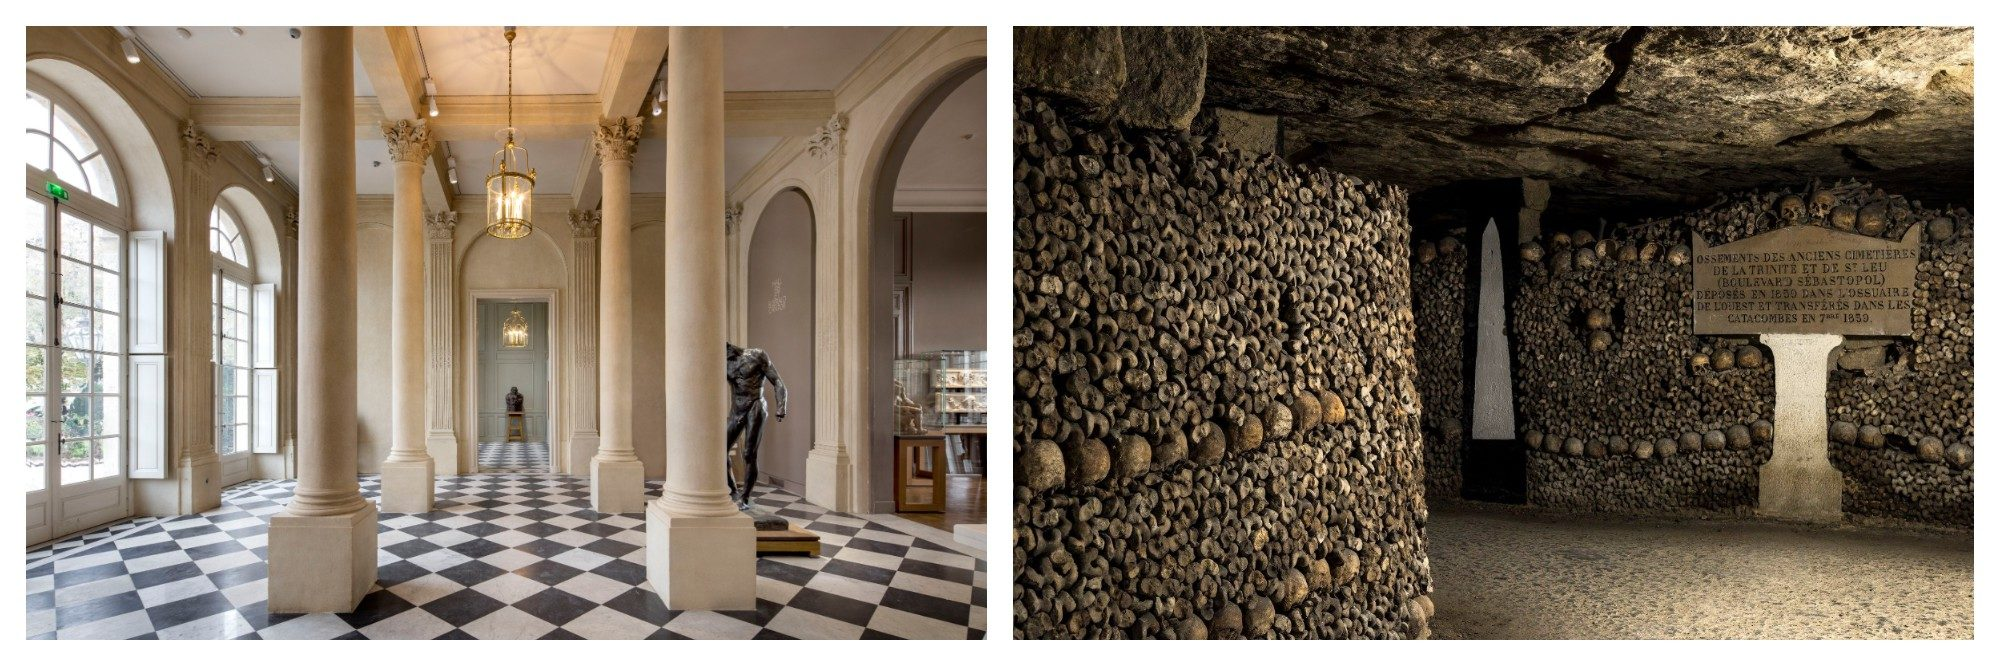 The interior of the Musée Rodin in Paris with pillars and black and white tiles. A wall of skulls and an plaque with an inscription at the catacombs in Paris.